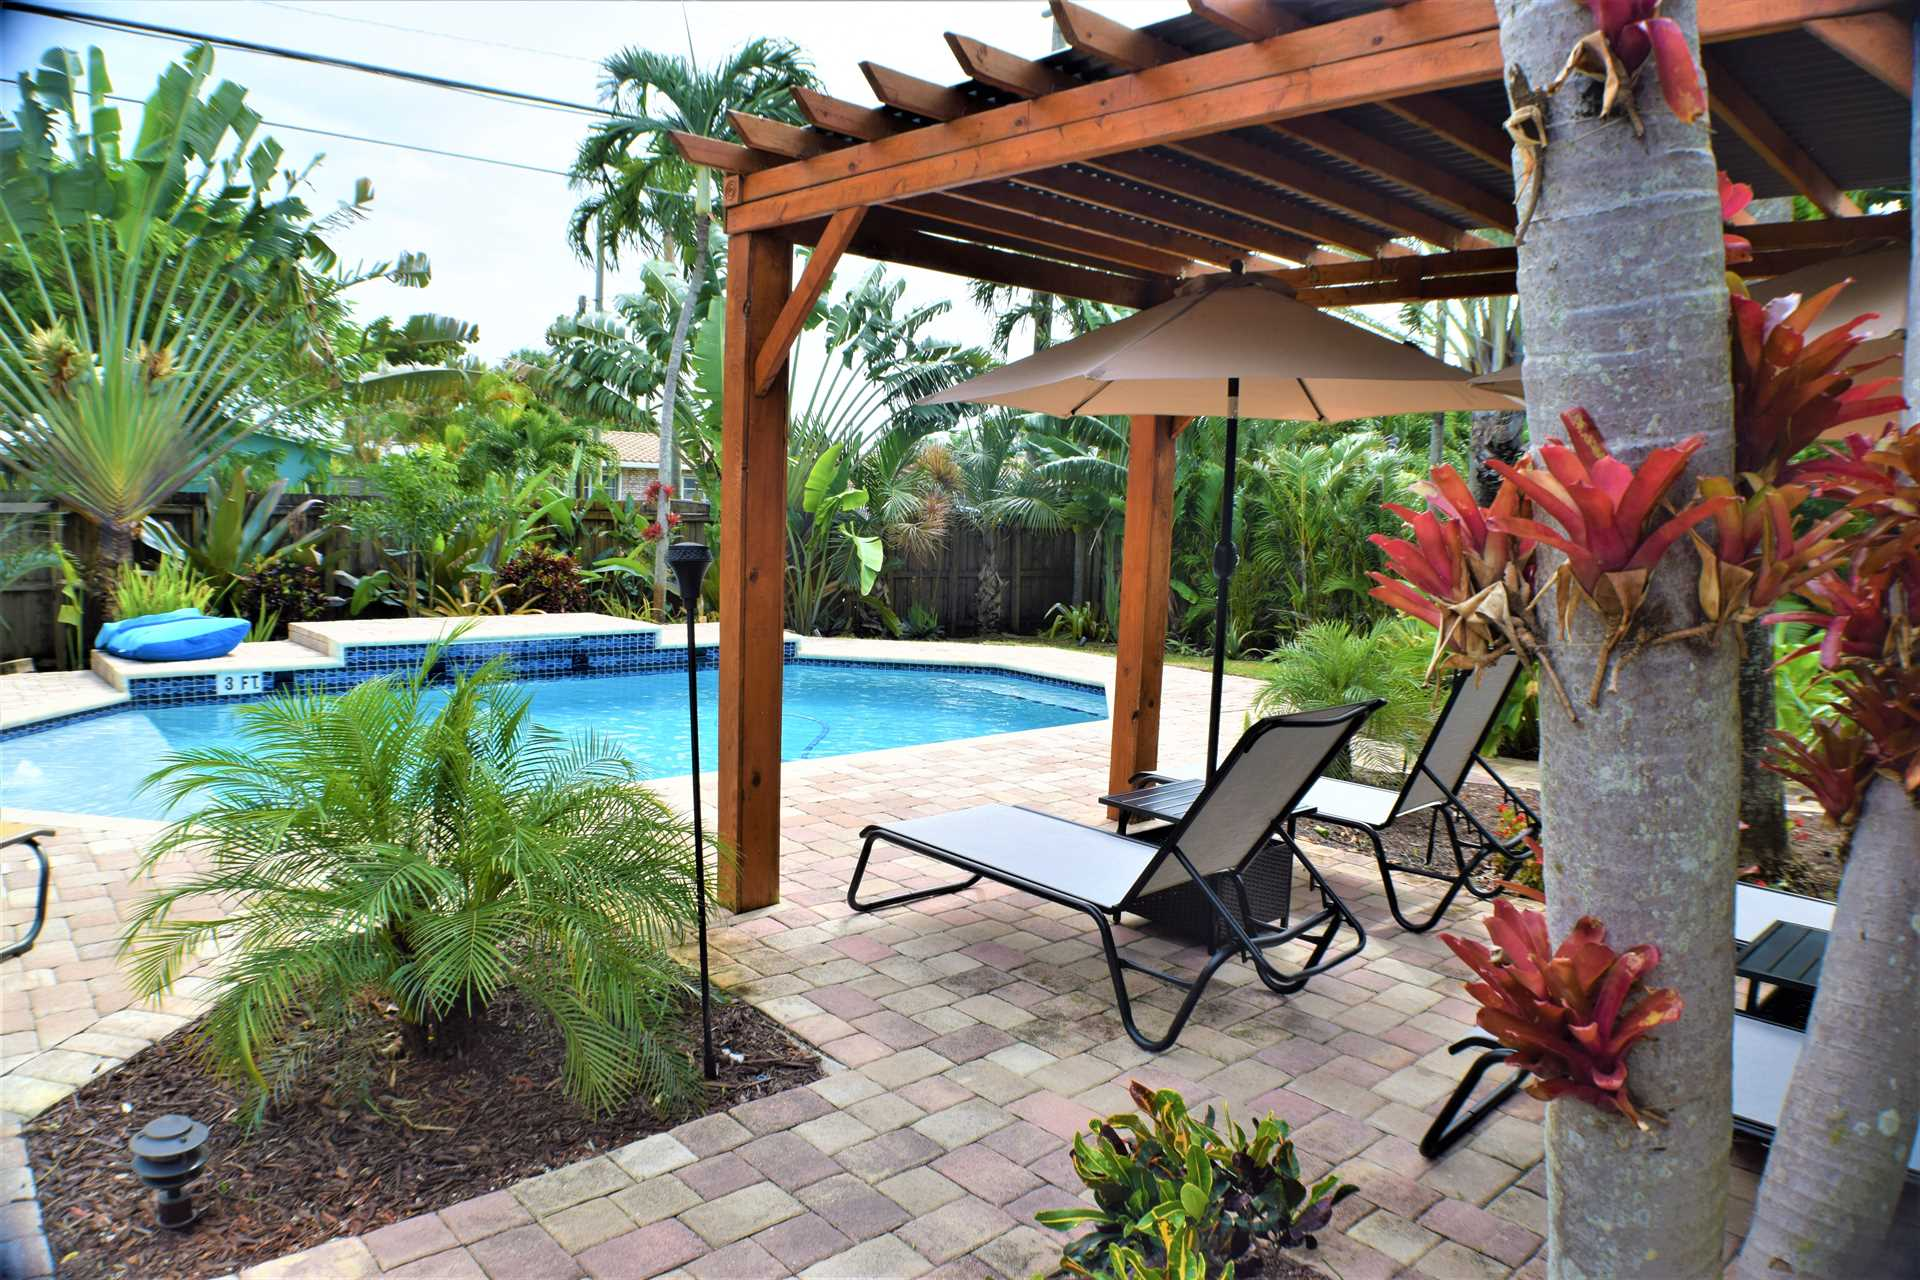 The pool area is a tropical paradise